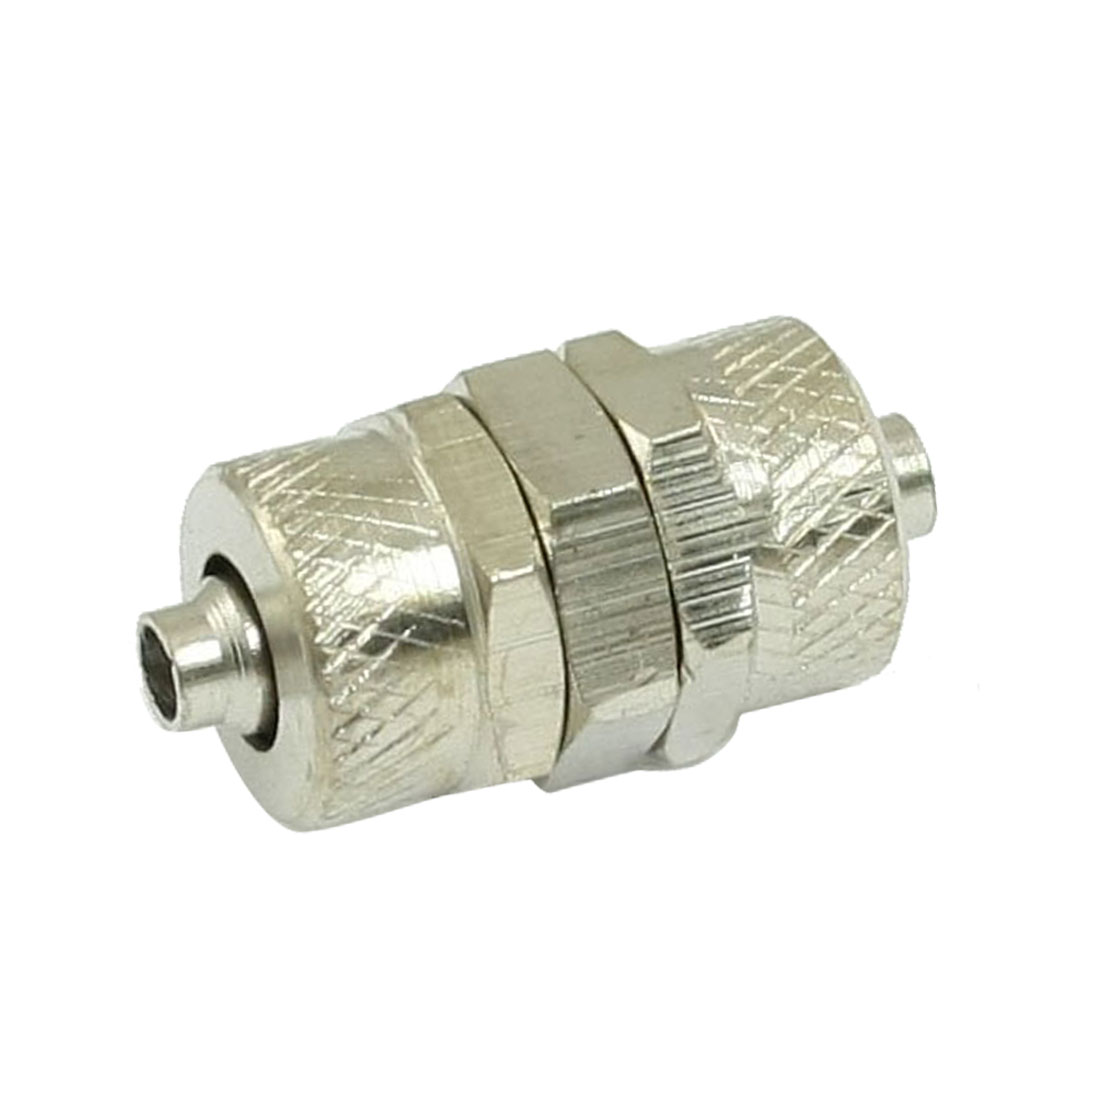 2 Pcs 4mm x 6mm Pneumatic Air Hose Quick Coupler Connector Fittings